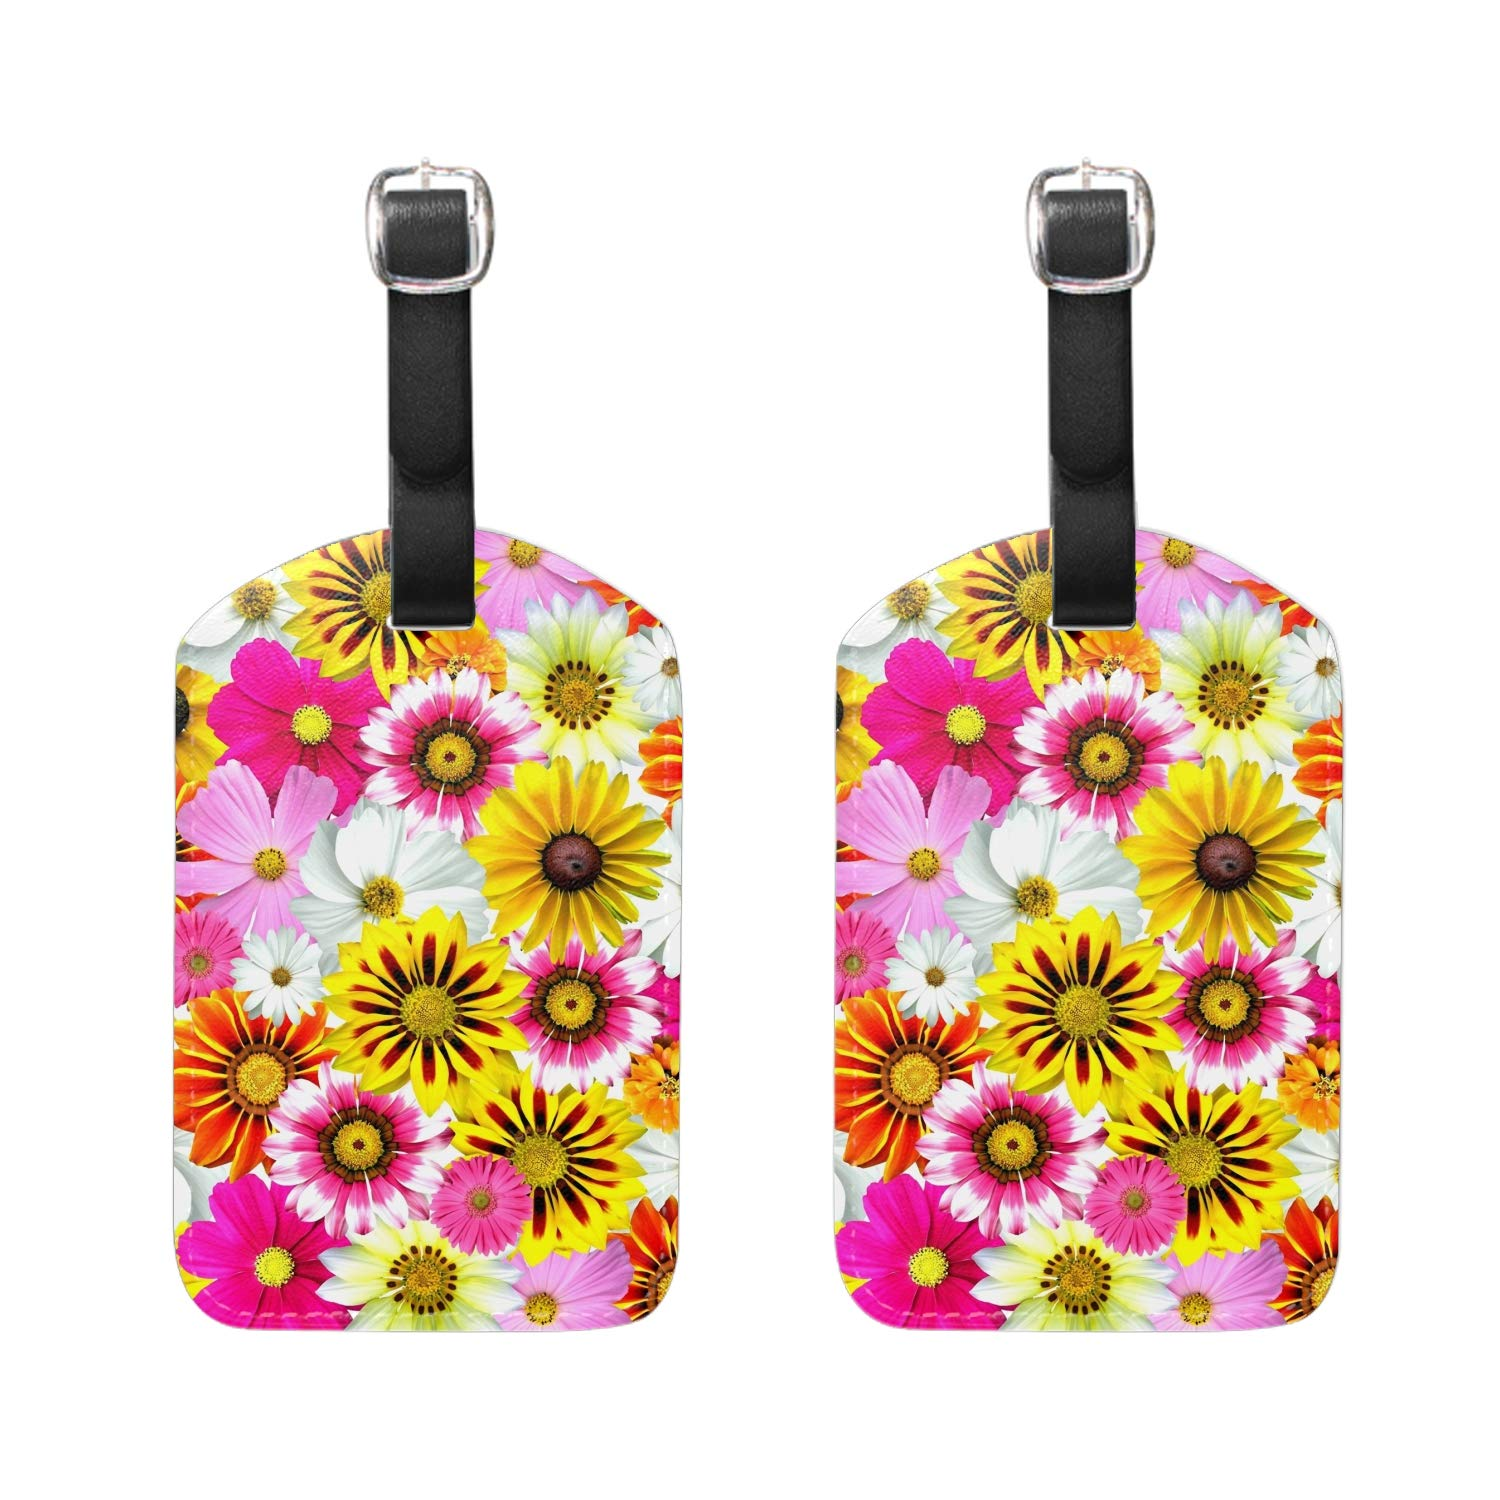 Golden Sunflowers Luggage Tag Travel ID Label Leather for Baggage Suitcase 2 Piece